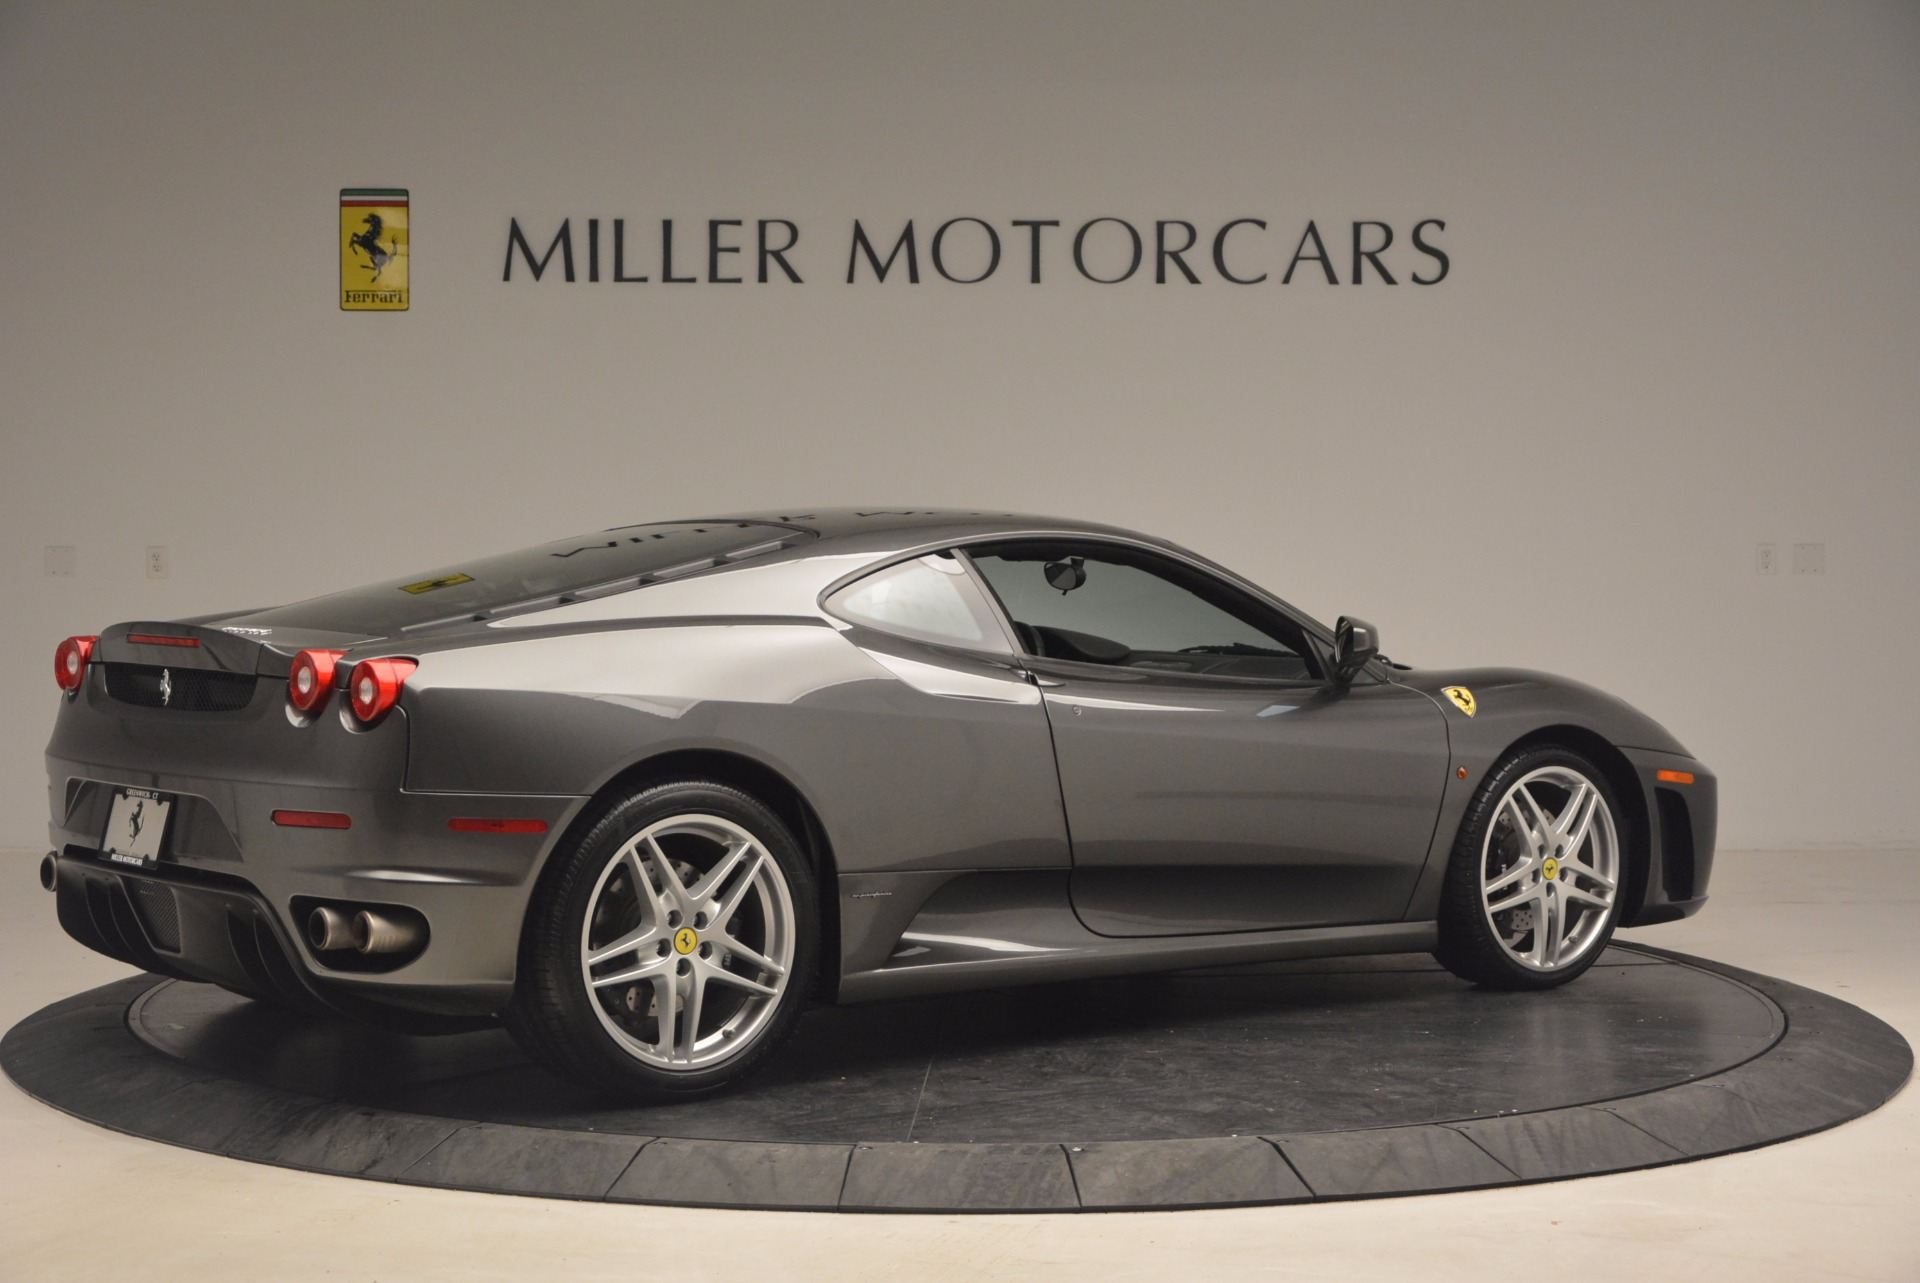 Used 2005 Ferrari F430 6-Speed Manual For Sale In Greenwich, CT. Alfa Romeo of Greenwich, 4391 1286_p8